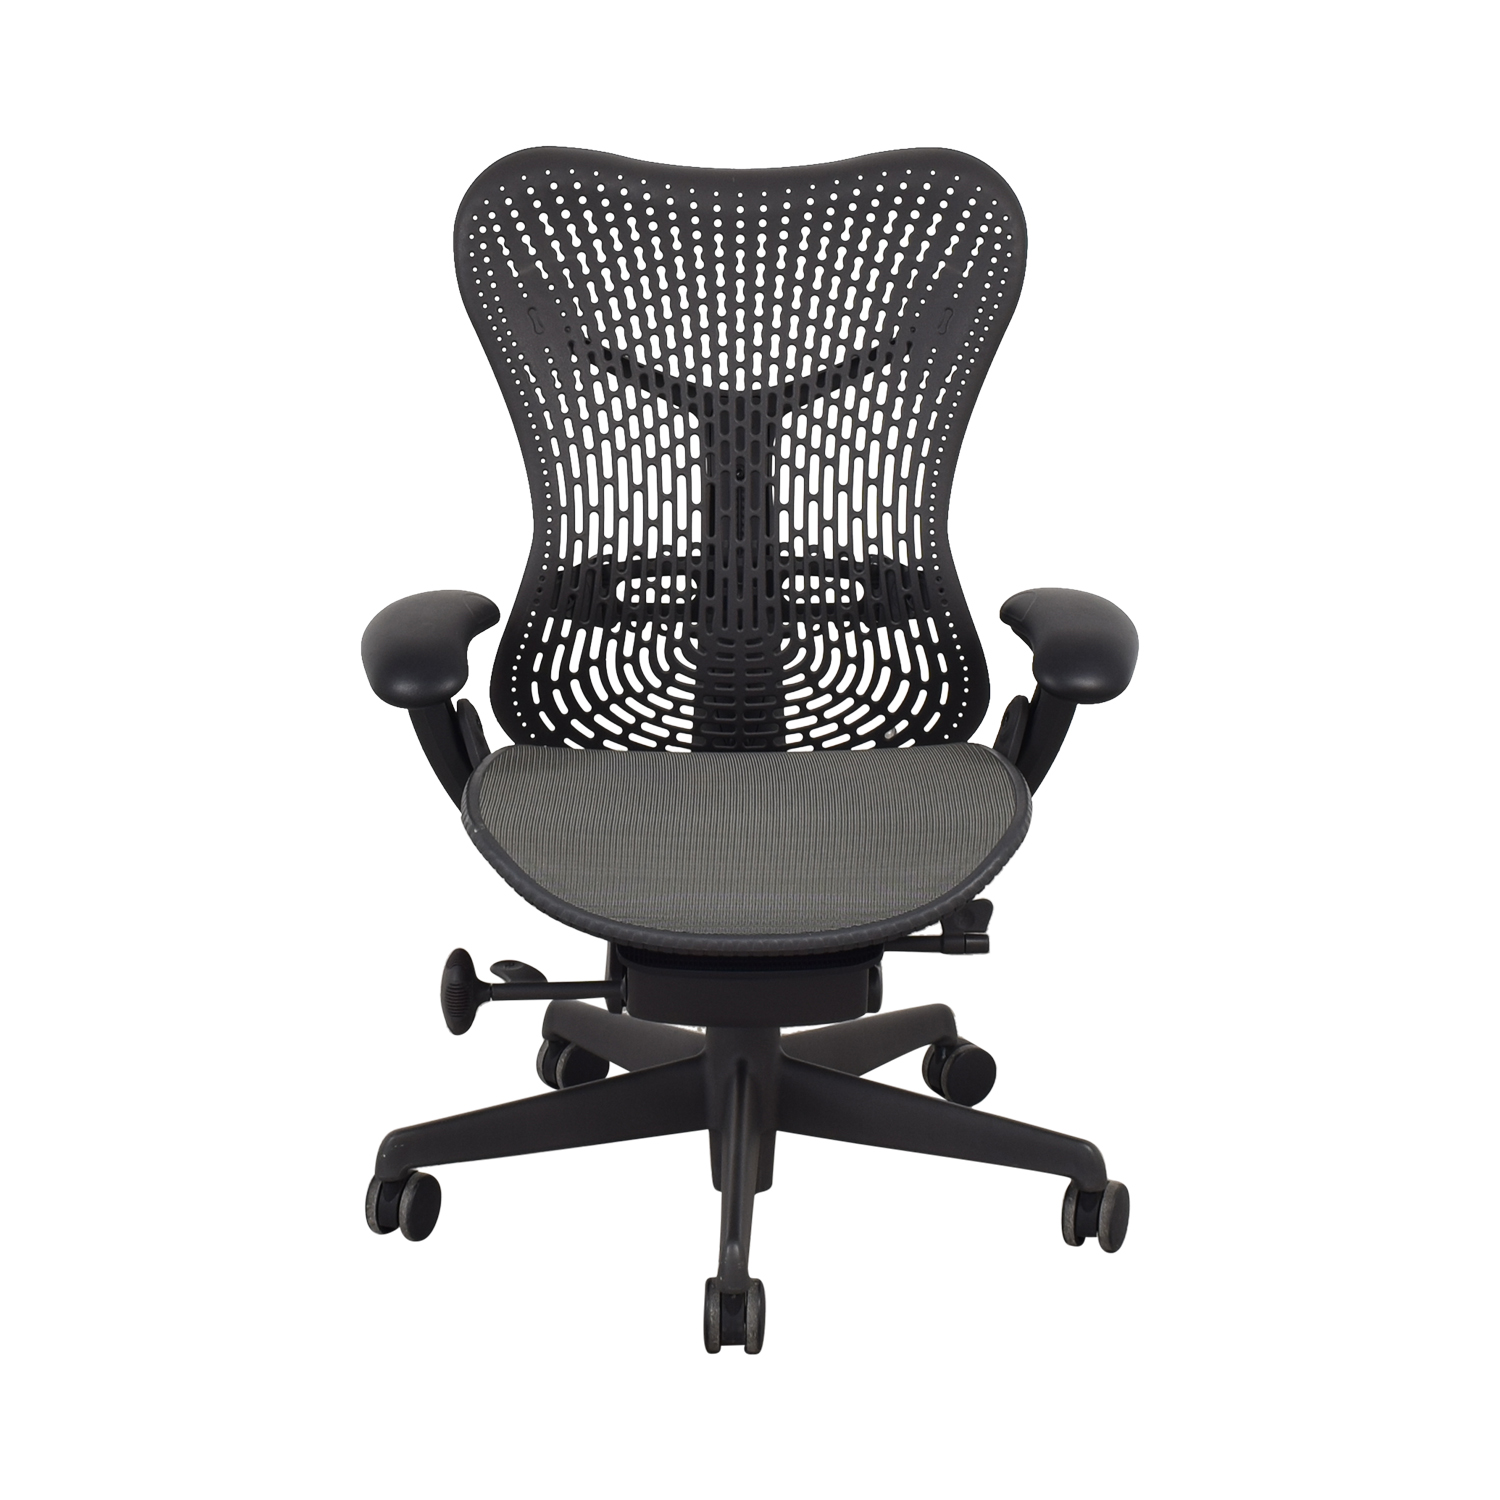 Herman Miller Herman Miller Mirra Office Chair discount